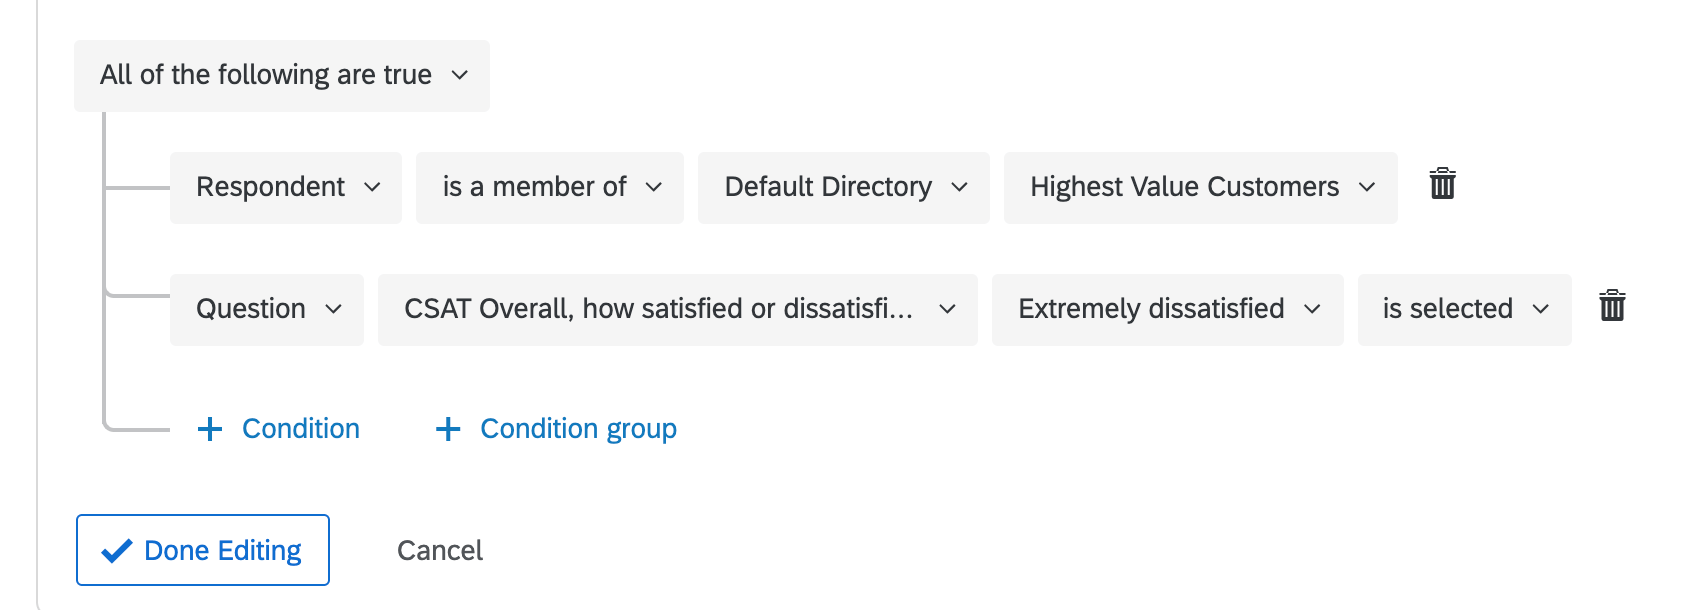 Condition show say all of the following are true: respondent is a member of default directory highest values customers; question CSAT extremely dissatisfied is selected